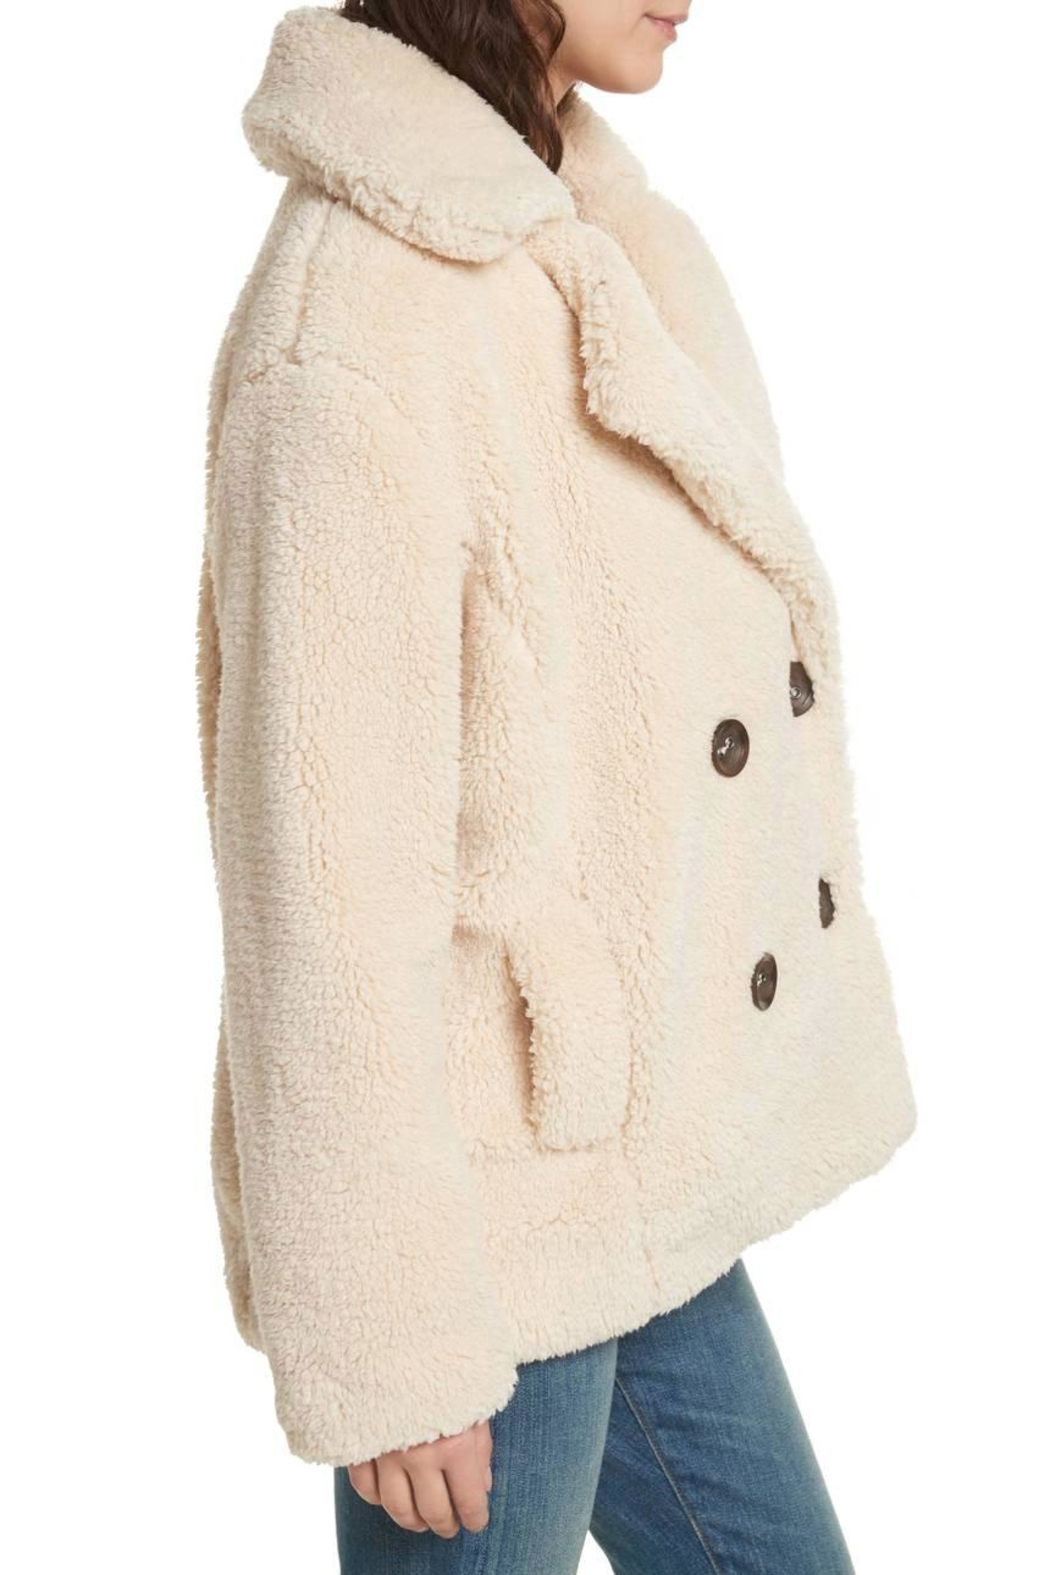 Free People Teddy Peacoat - Front Full Image